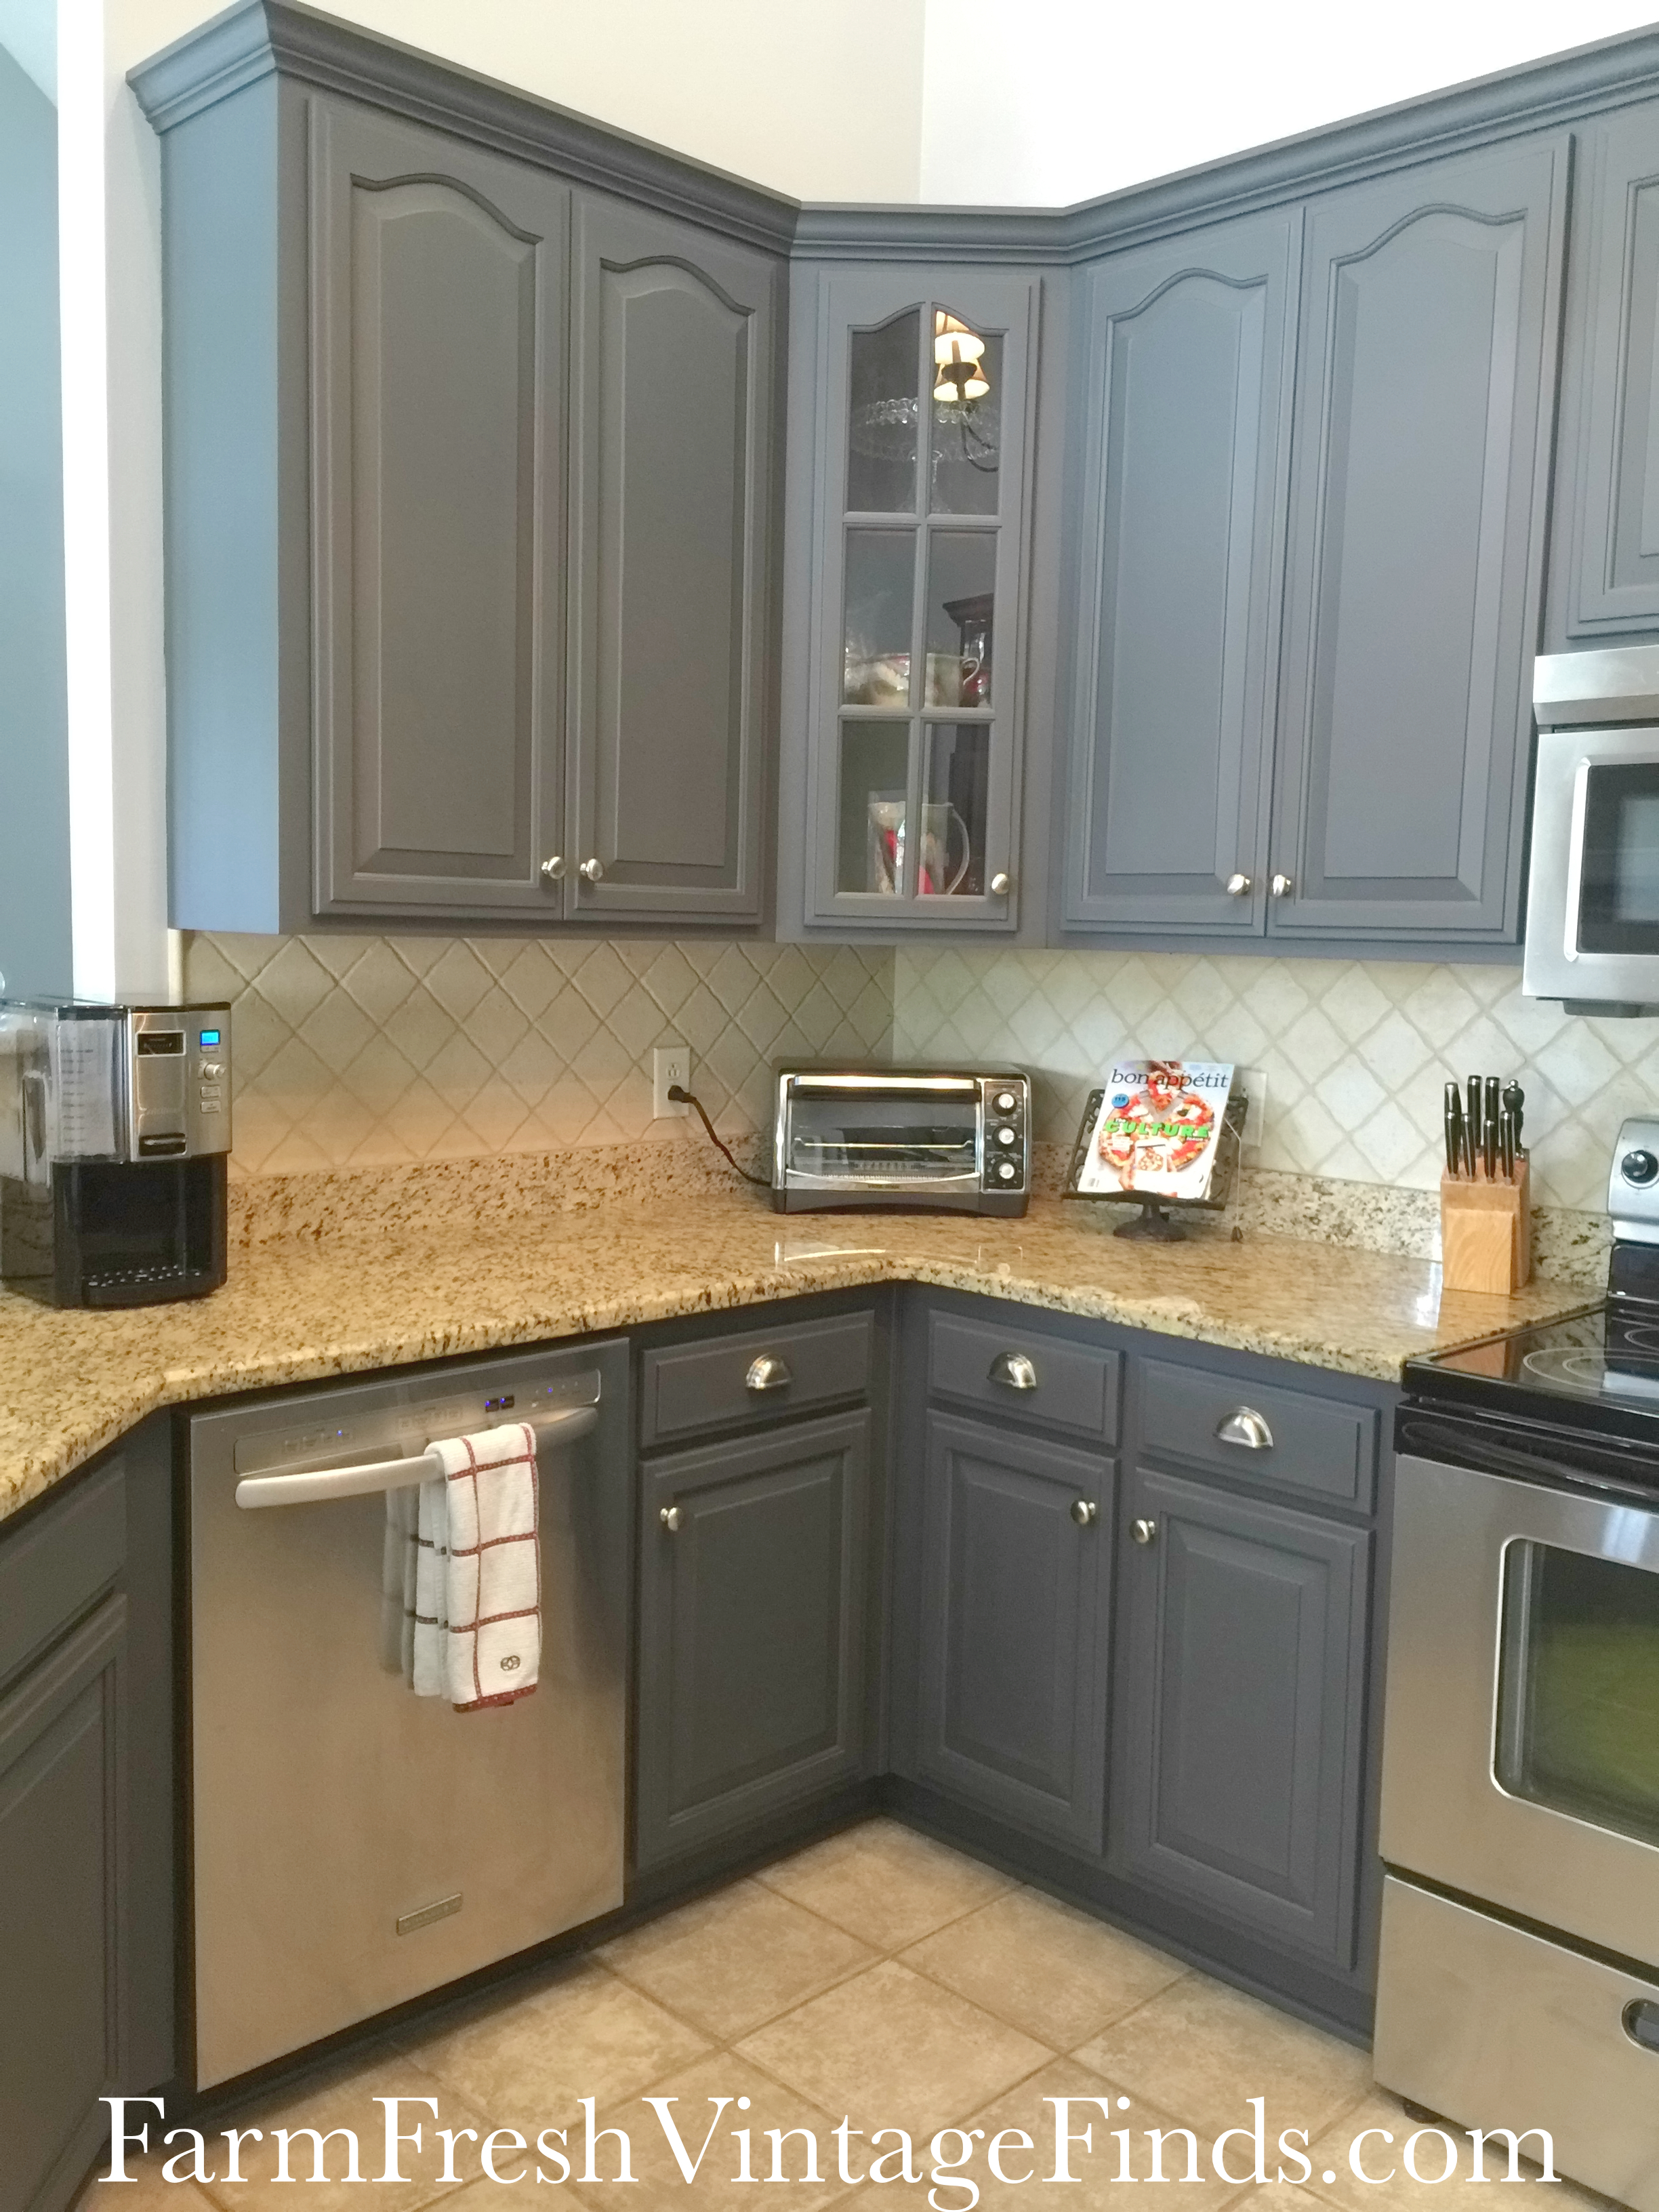 Painting kitchen cabinets with general finishes milk paint Pictures of painted cabinets